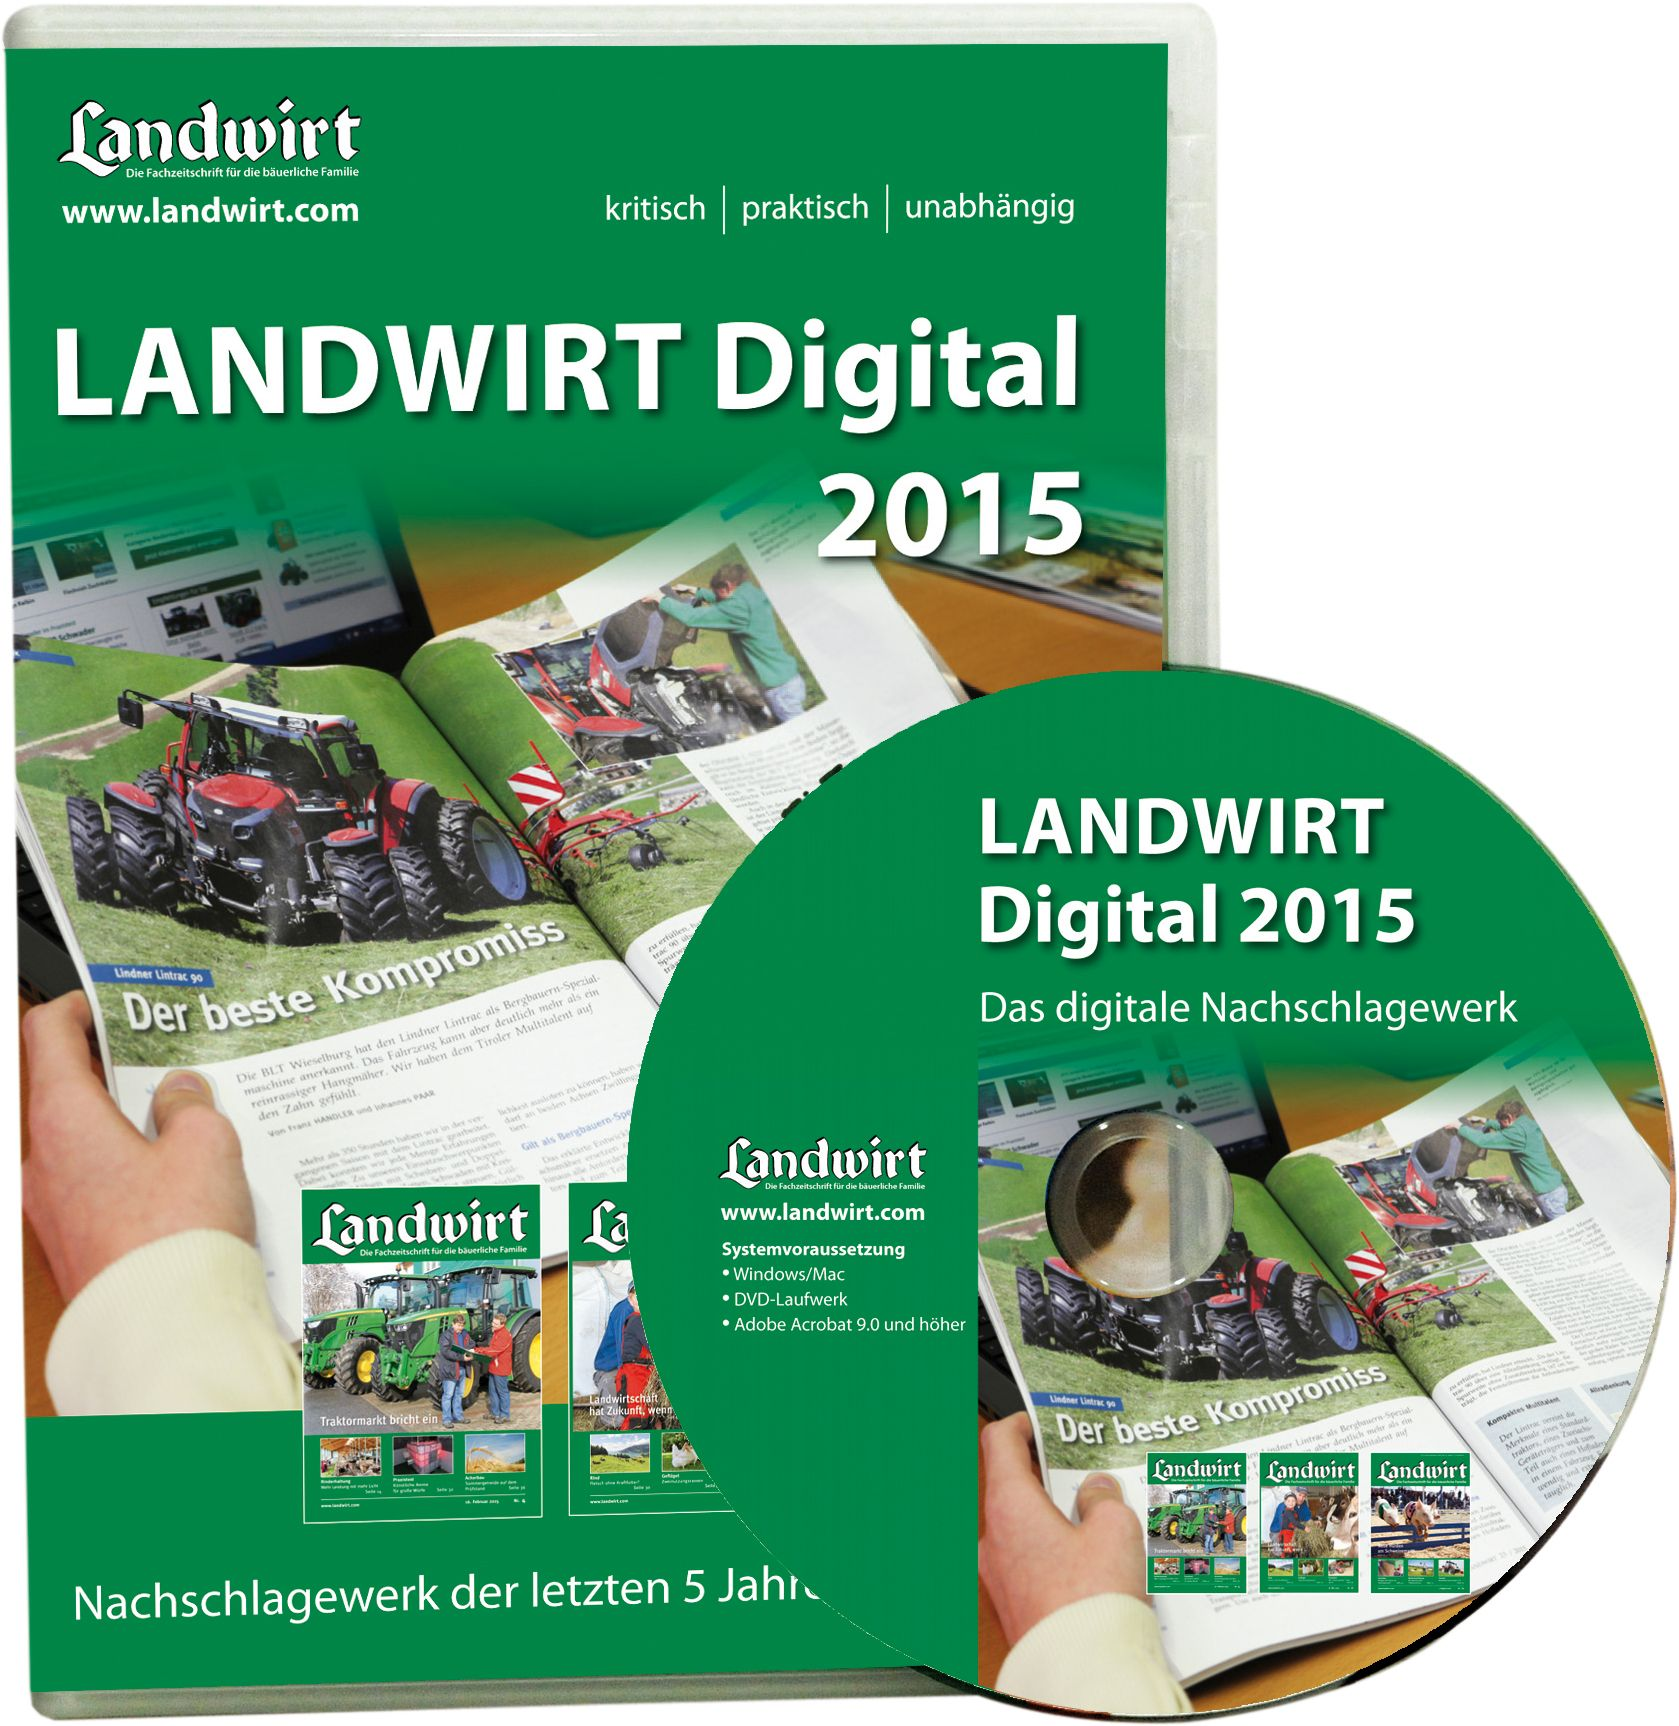 LANDWIRT Digital 2015